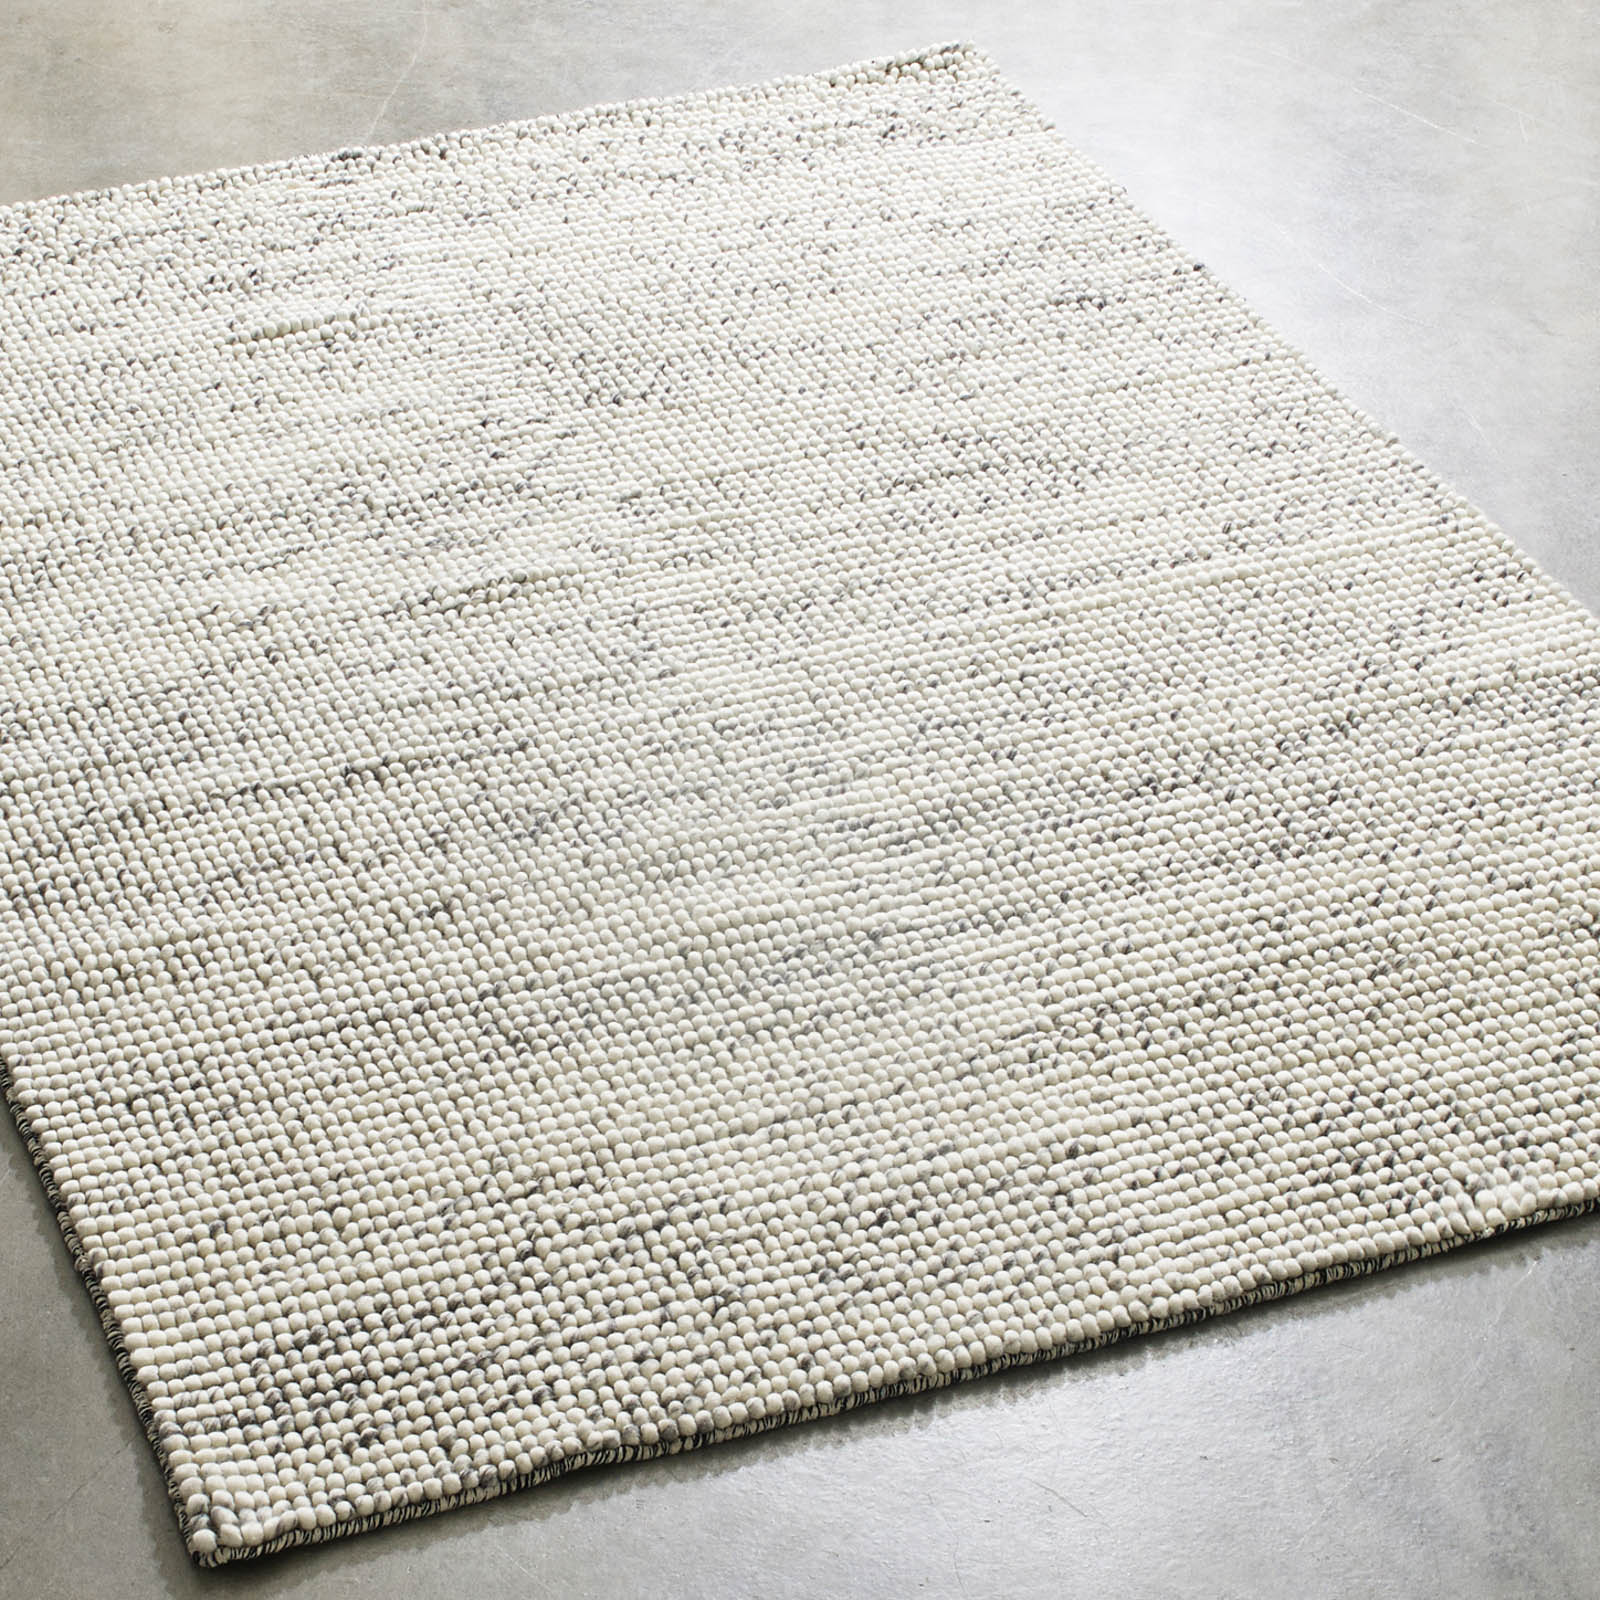 Bubbles Rugs in Mixed Grey by Massimo